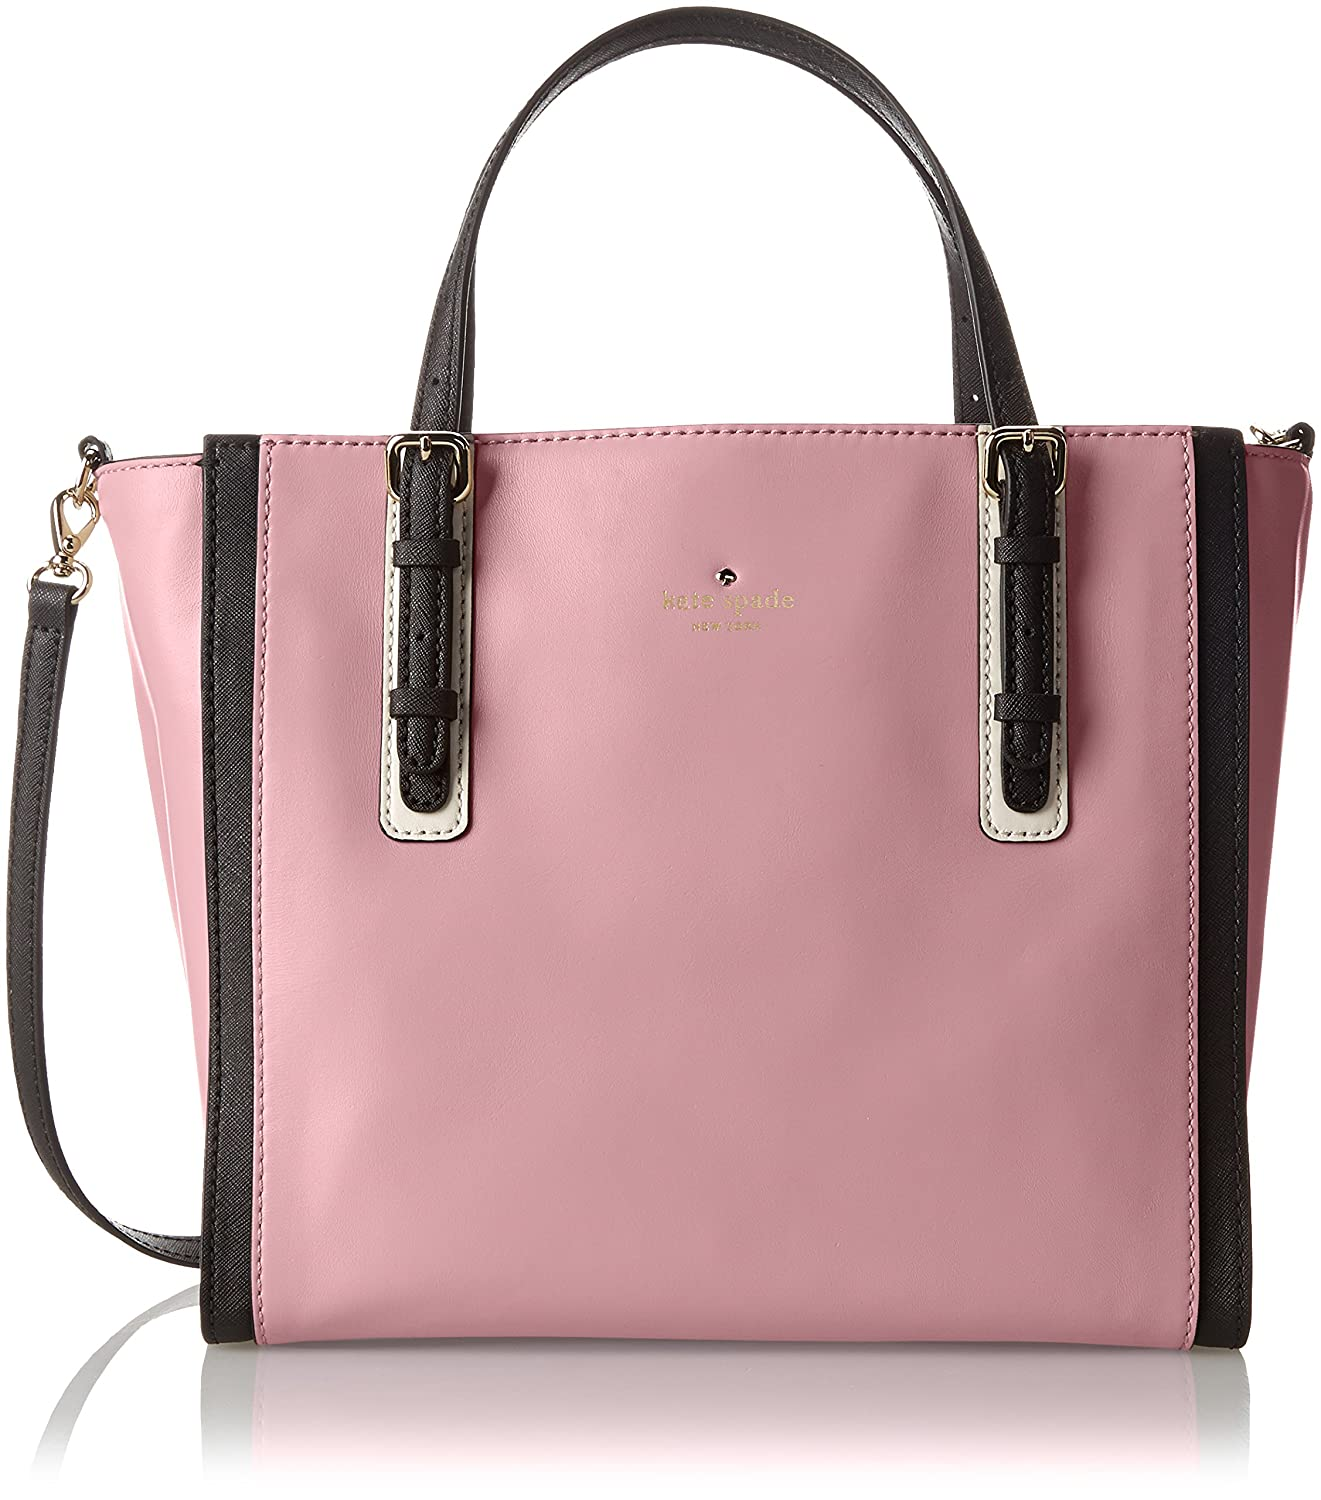 kate spade new york Bedford Square Easten Shoulder Handbag